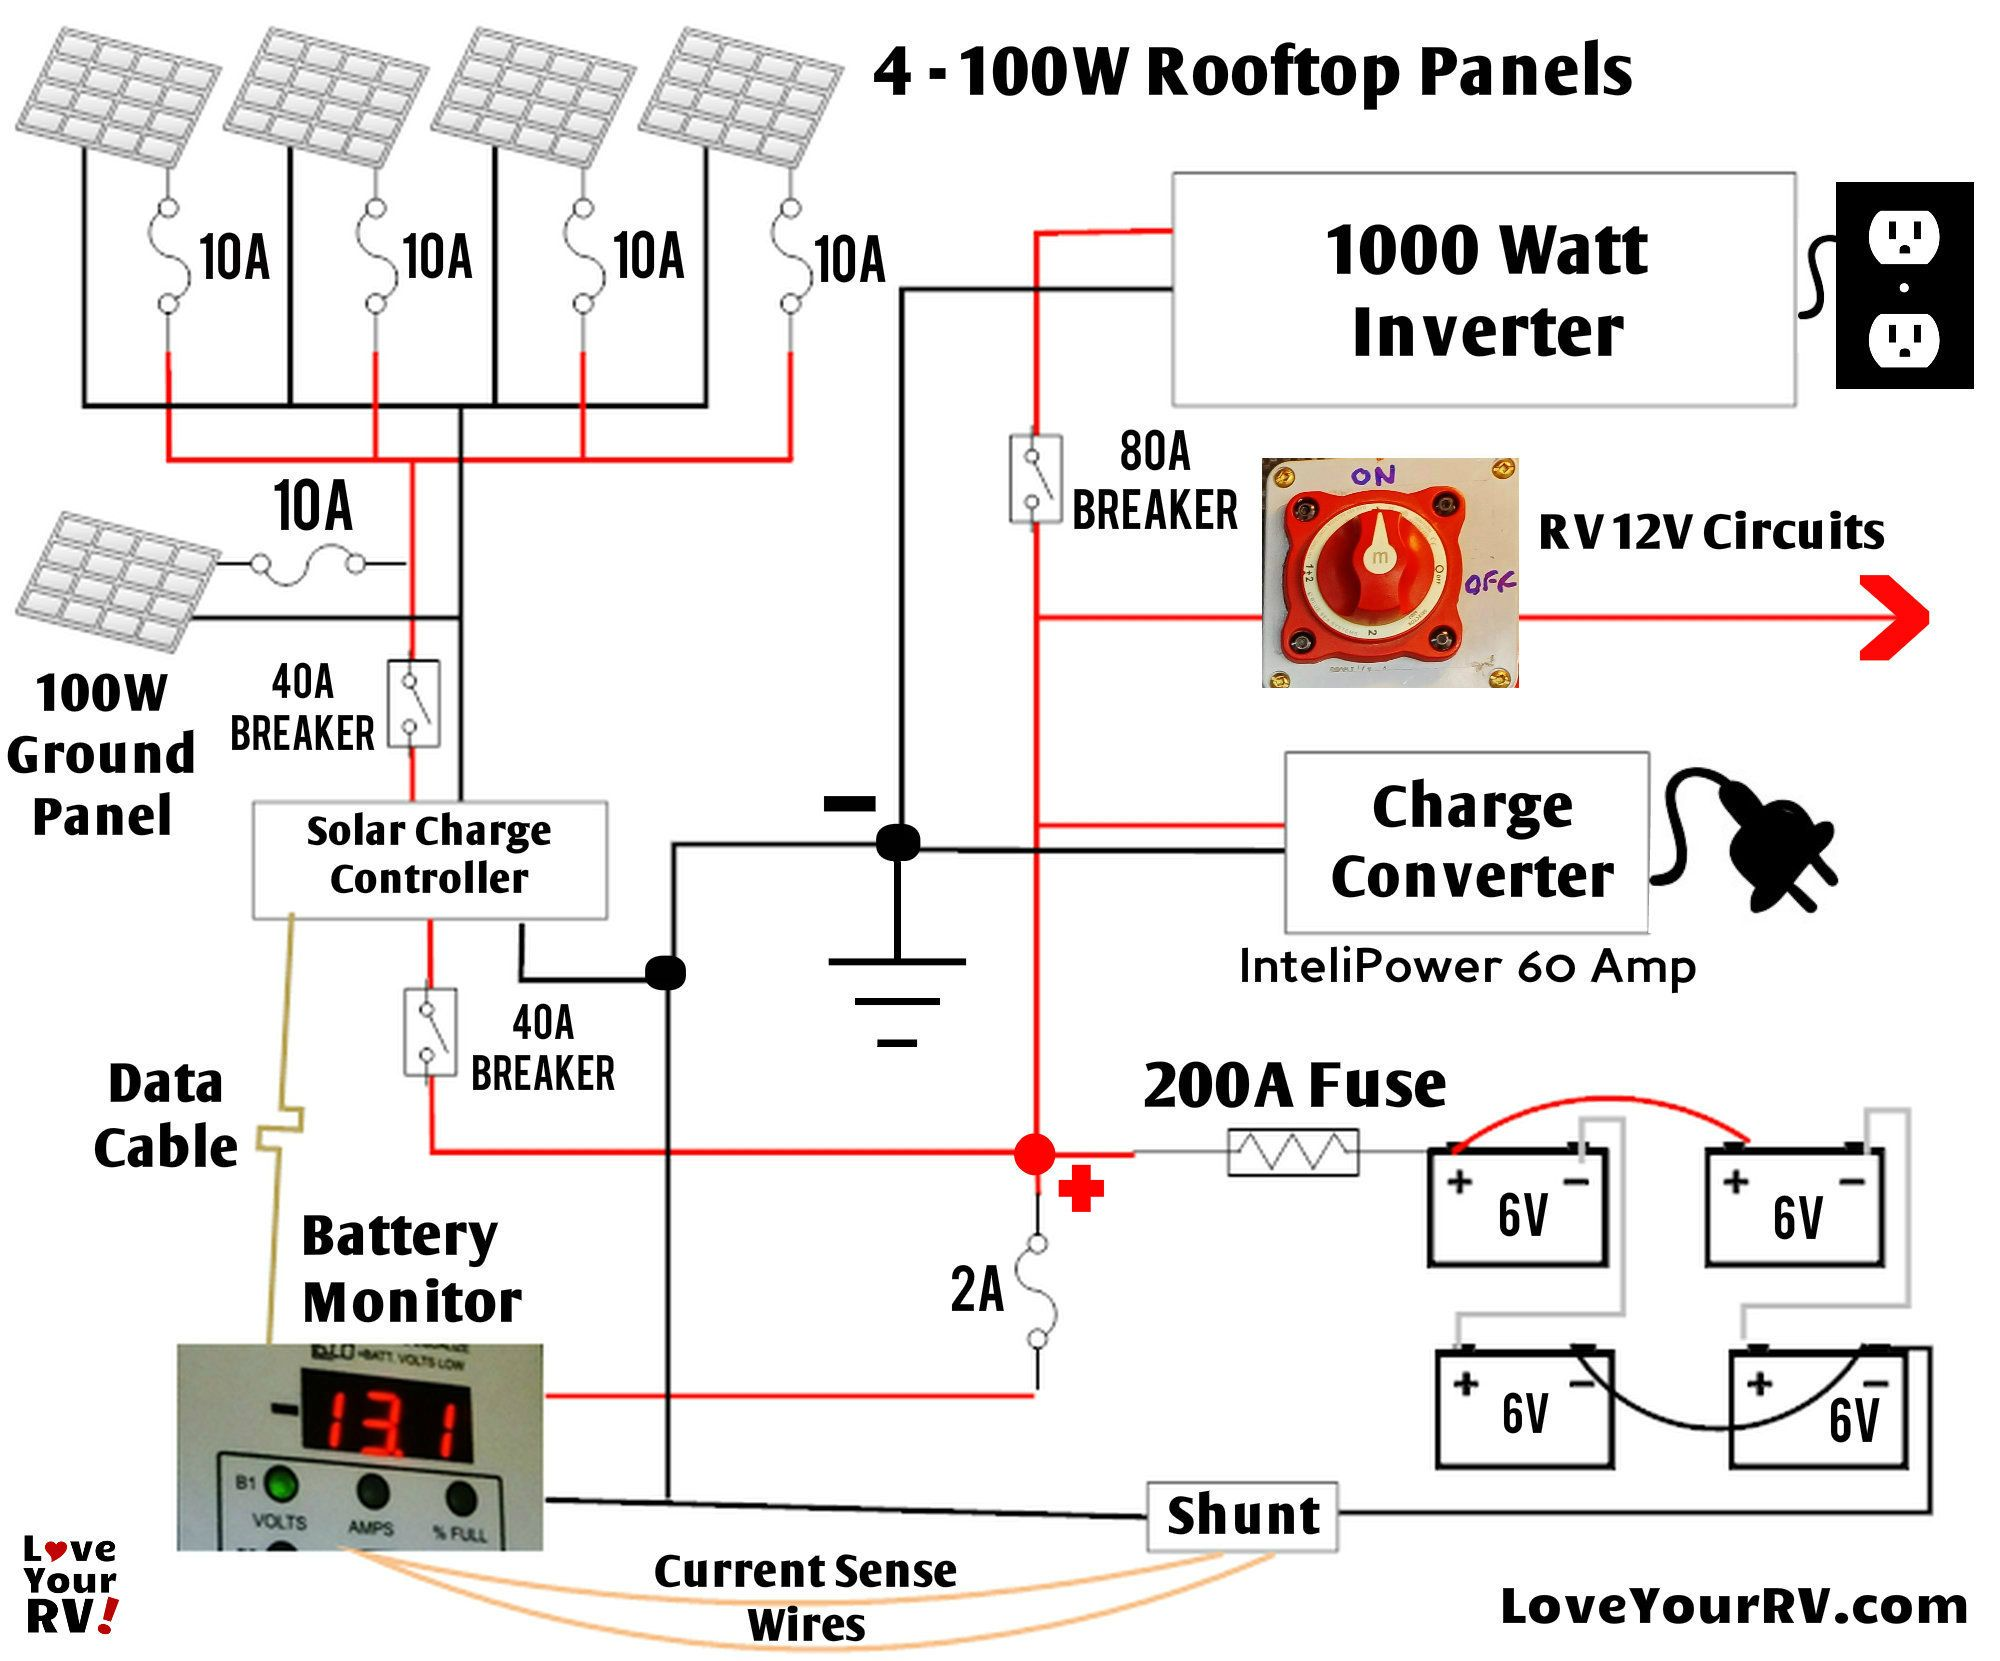 Detailed Look At Our Diy Rv Boondocking Power System Solar. Schematic Diagram Of Our Rv Solar Power System Loveyourrv. Wiring. Motorhome Towing Systems Diagrams At Scoala.co